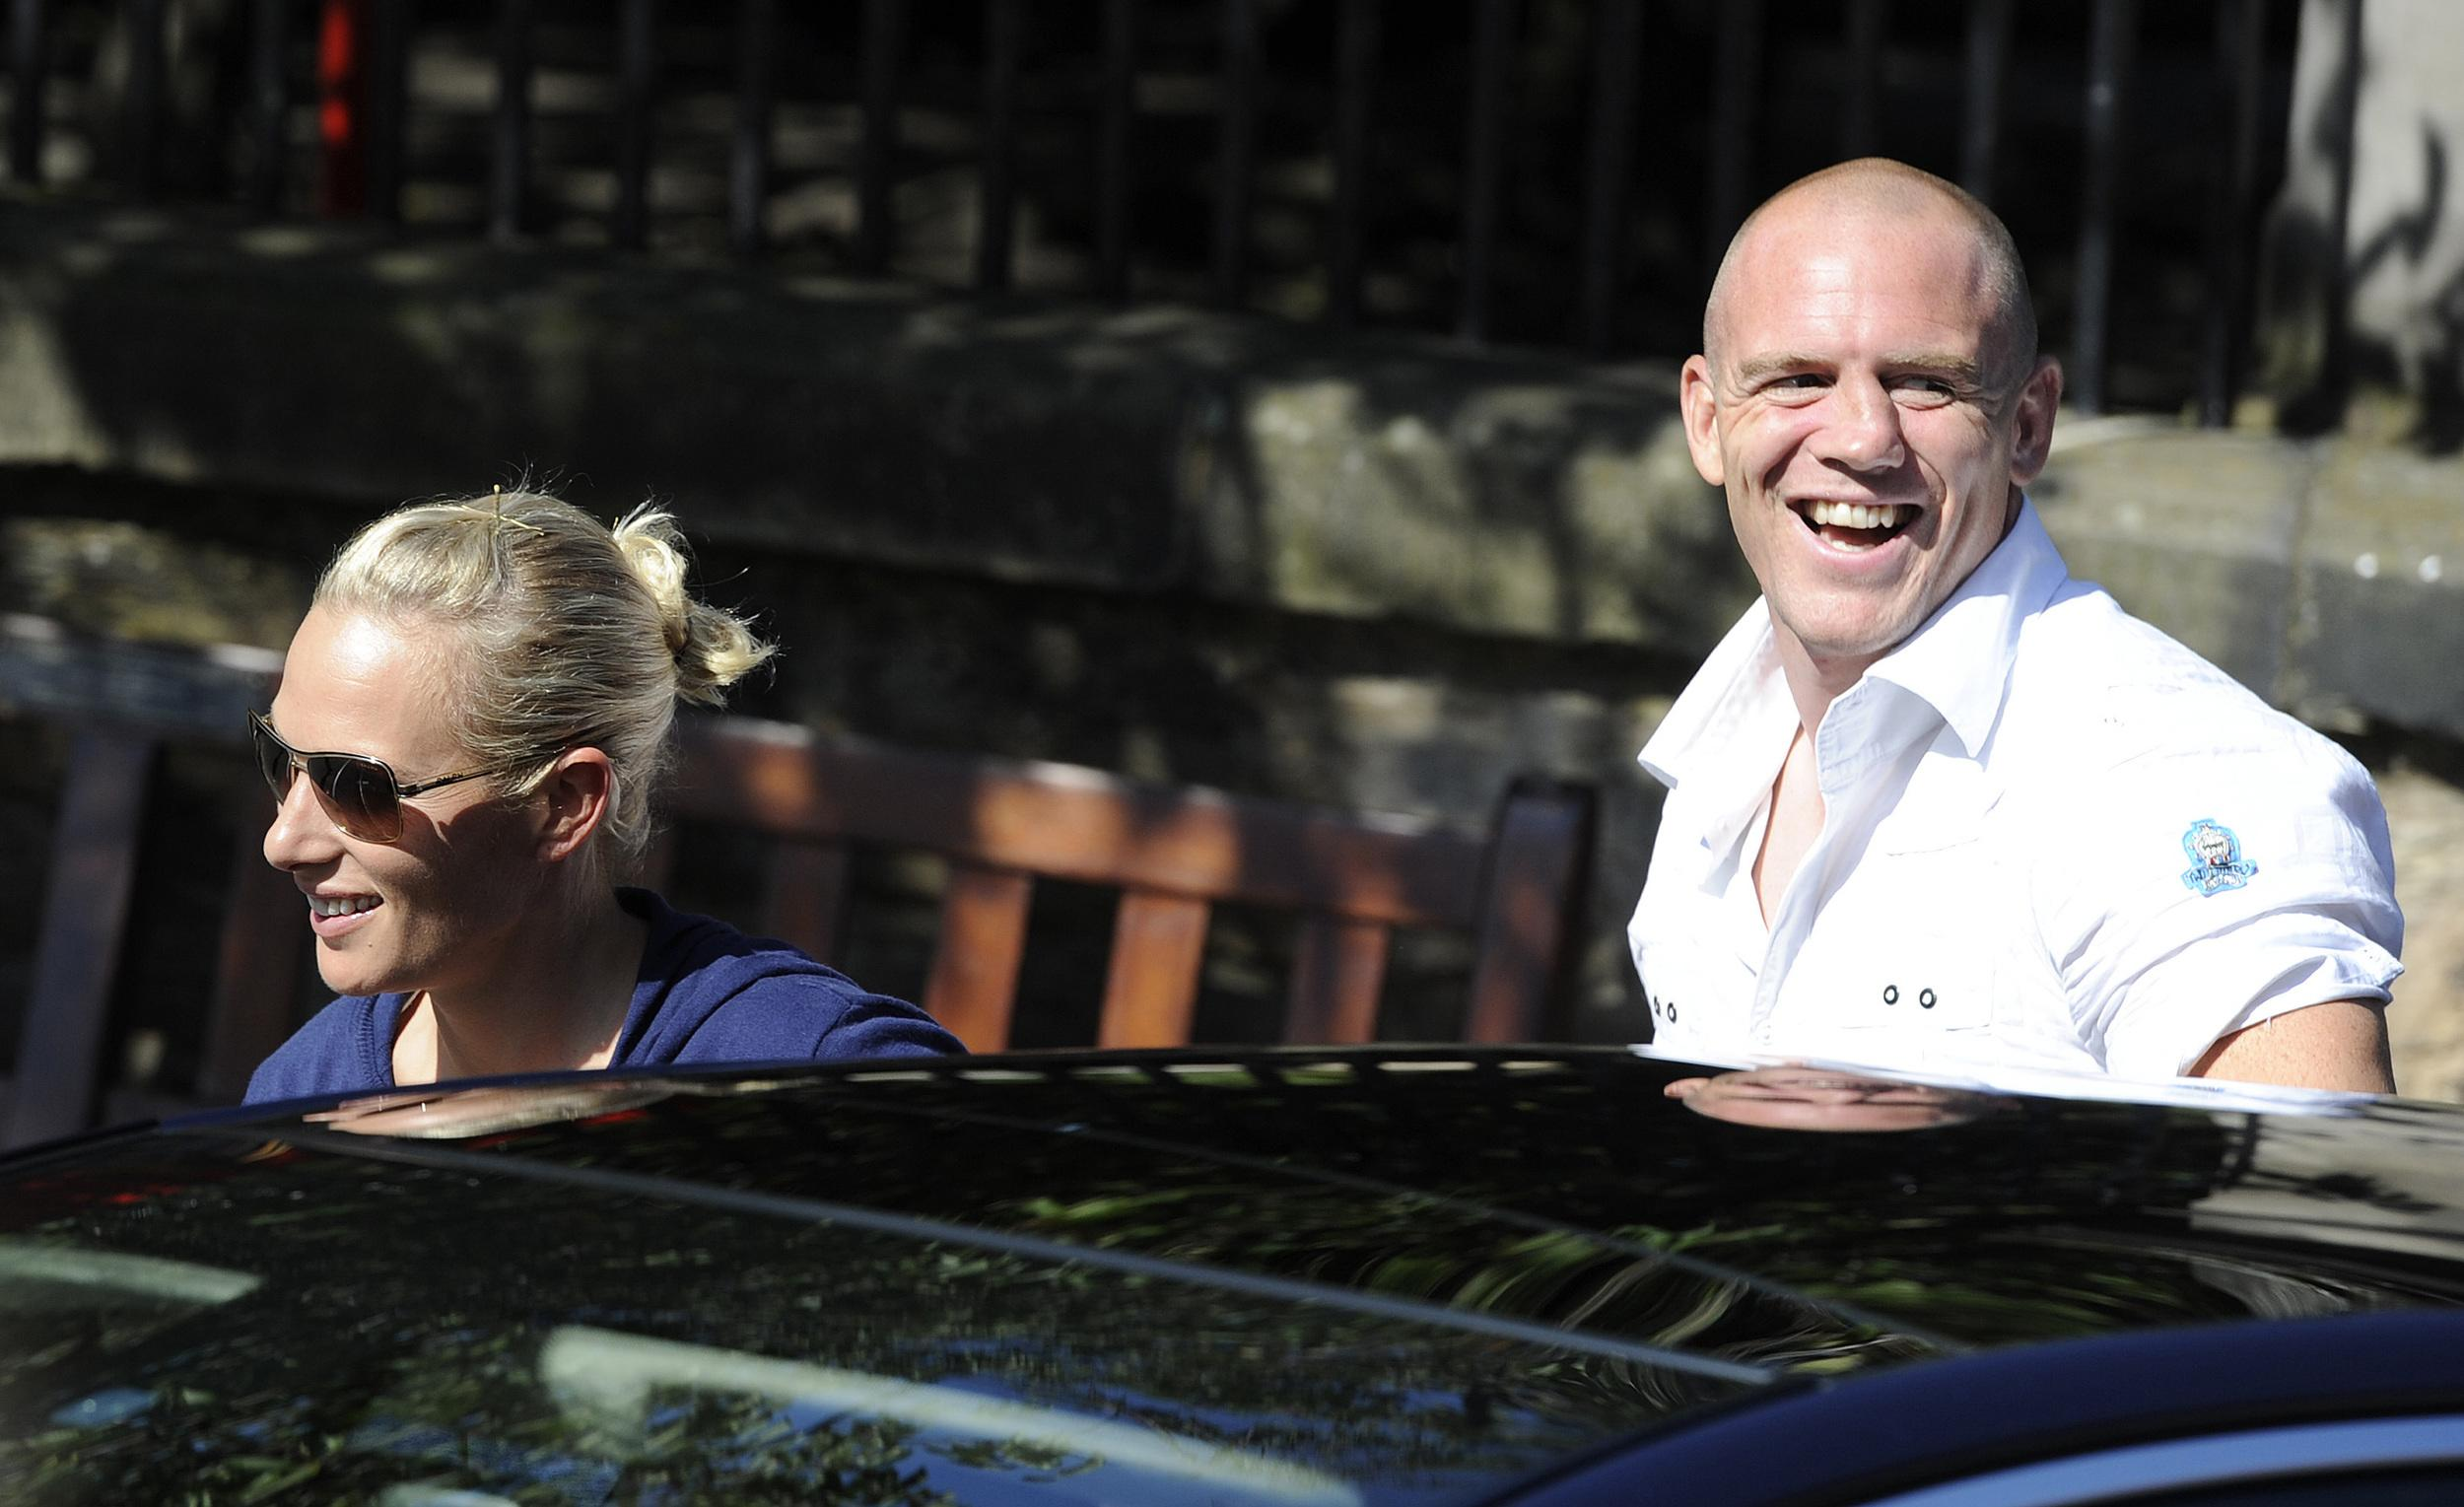 Britain's Zara Phillips (L), the eldest granddaughter of Queen Elizabeth and England rugby captain Mike Tindall (R), arrive for their wedding rehearsal, at Canongate Kirk in Edinburgh, Scotland July 29, 2011. REUTERS/Nigel Roddis  (BRITAIN - Tags: ROYALS ENTERTAINMENT SOCIETY SPORT)